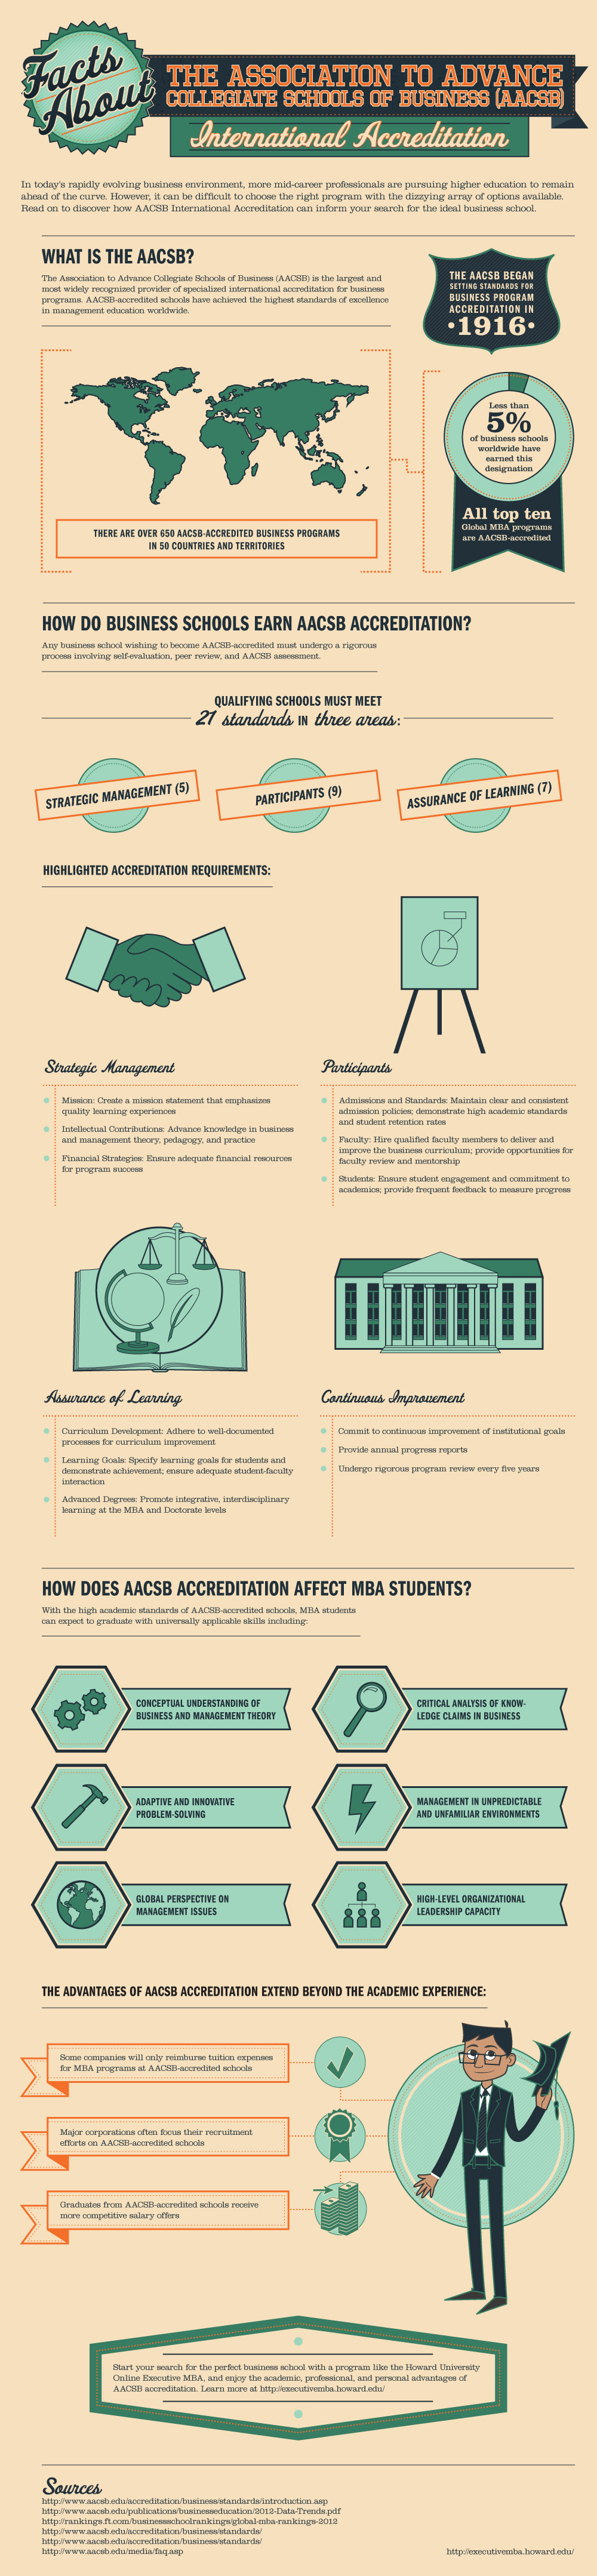 facts-about-aacsb-international-accreditation-a-closer-look_52163719dab9d